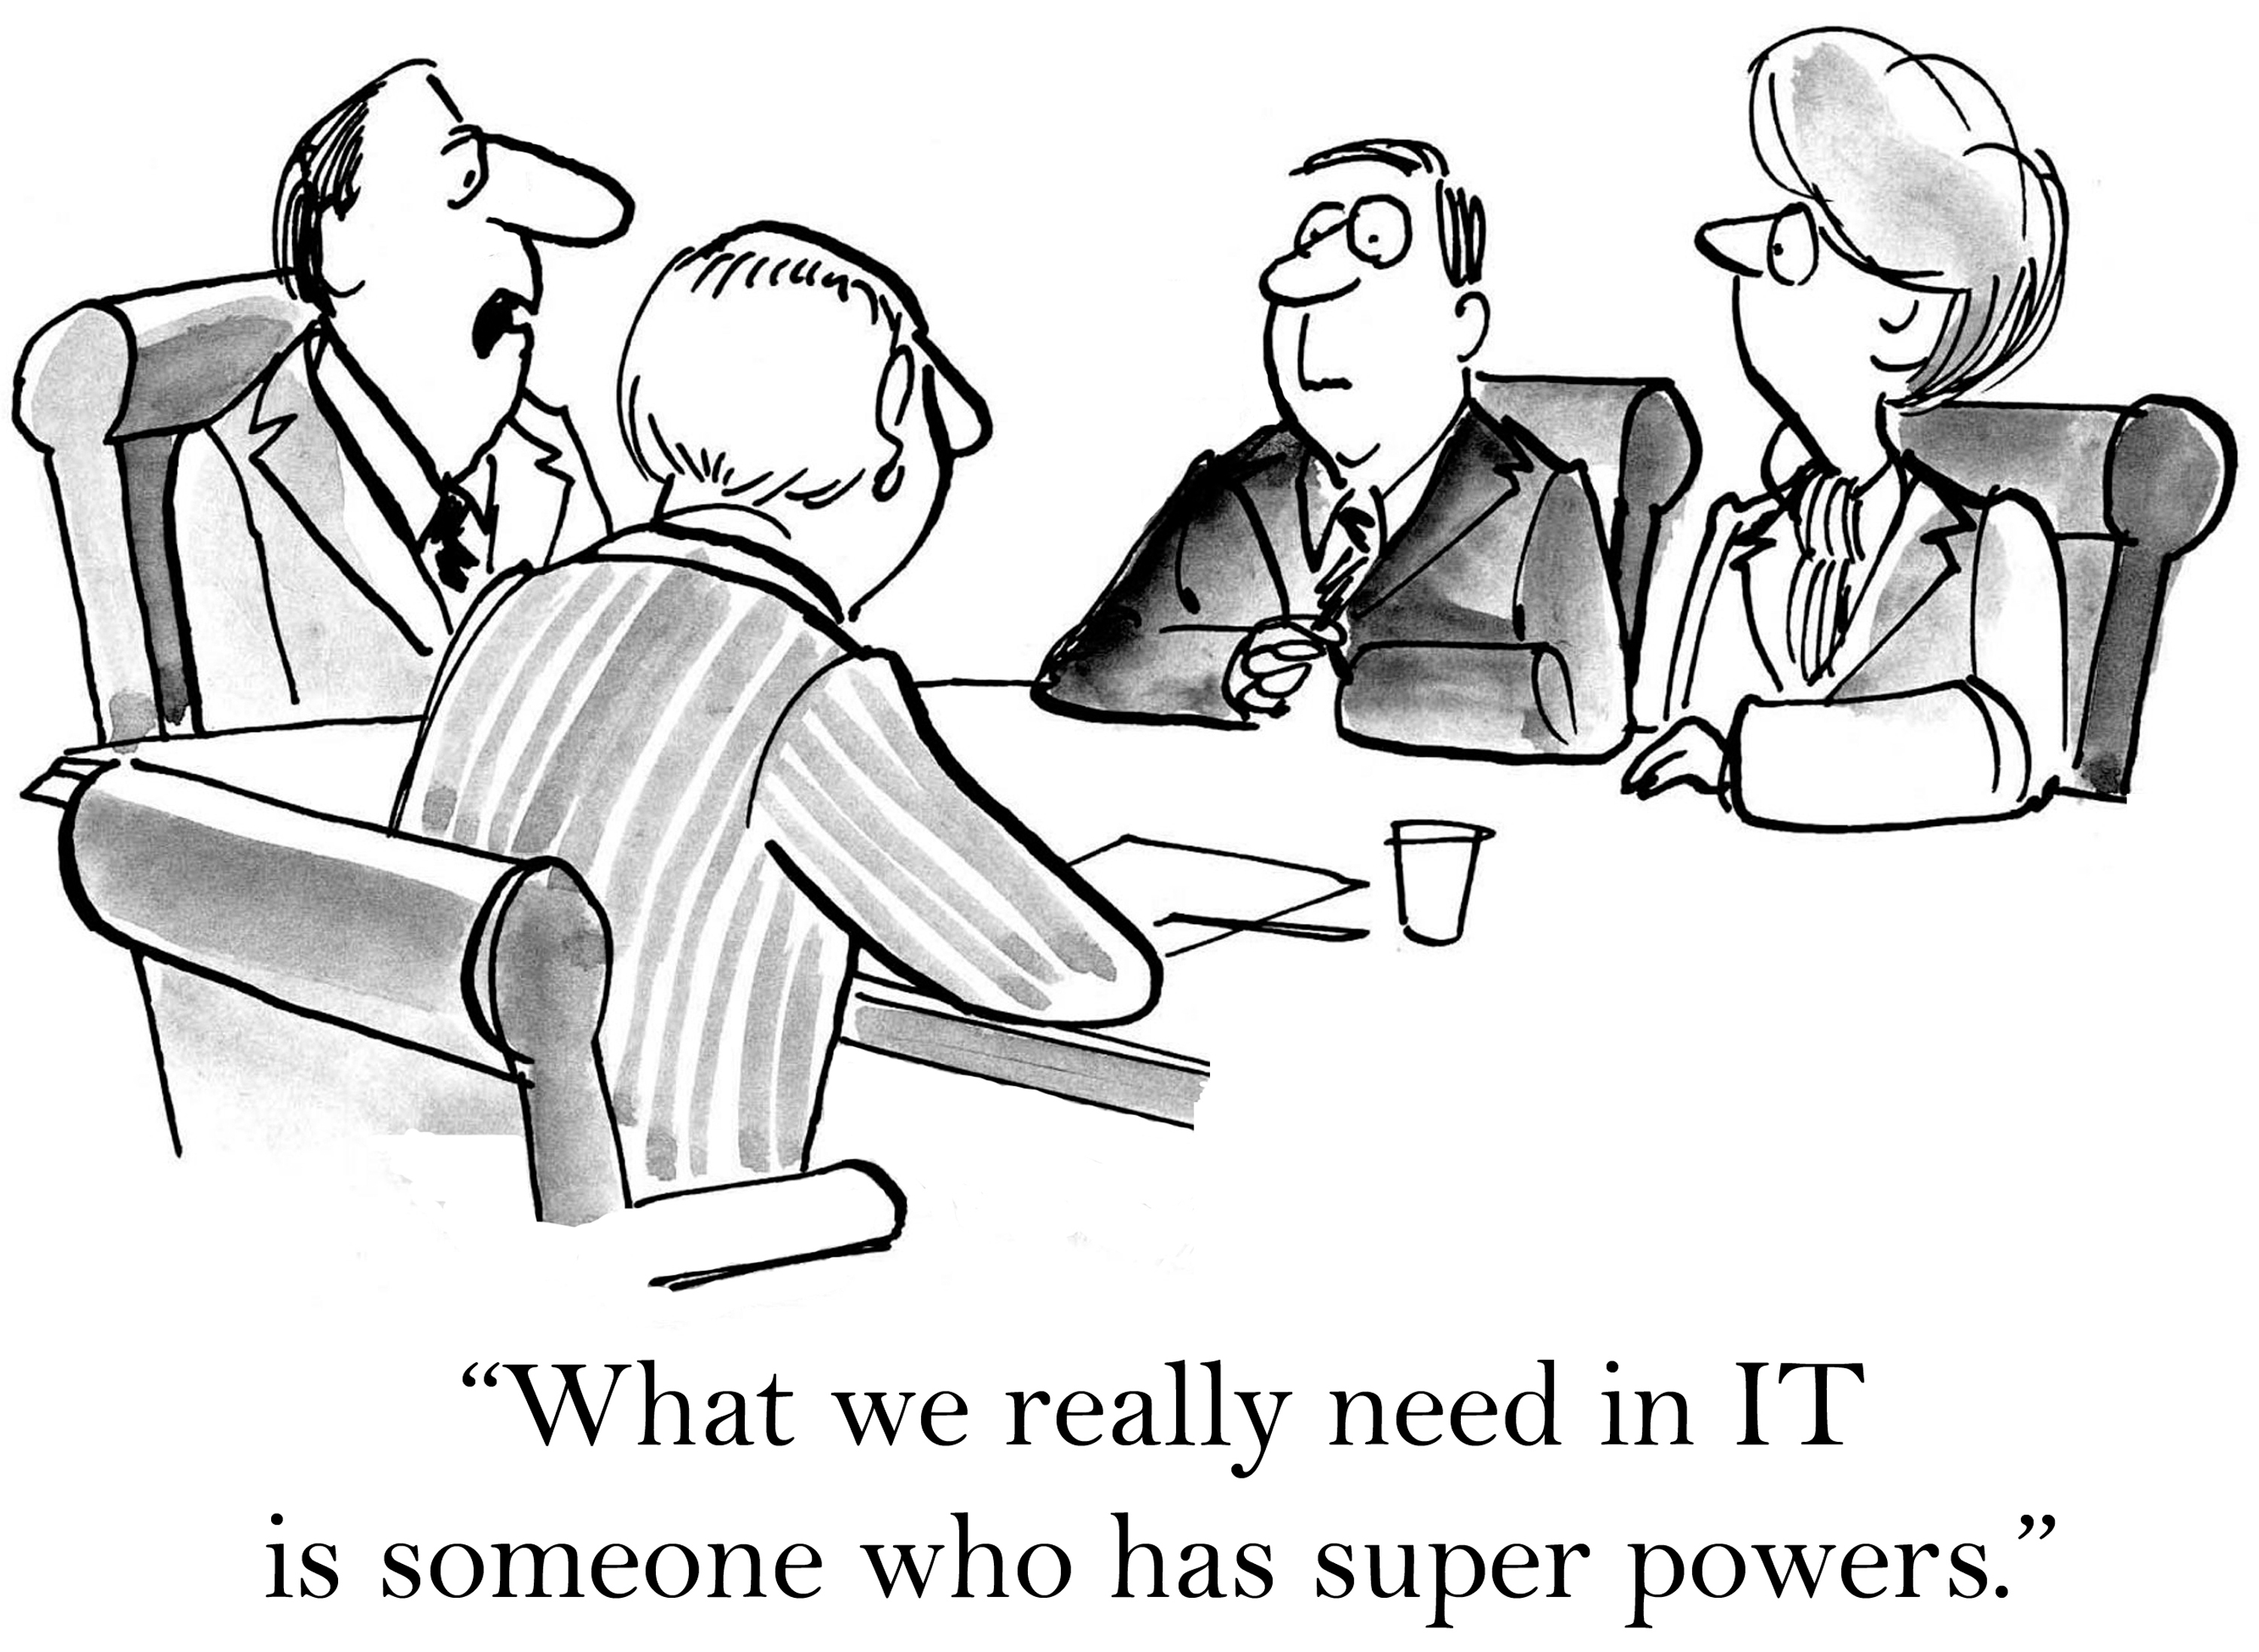 SD-WAN gives your IT team superpowers